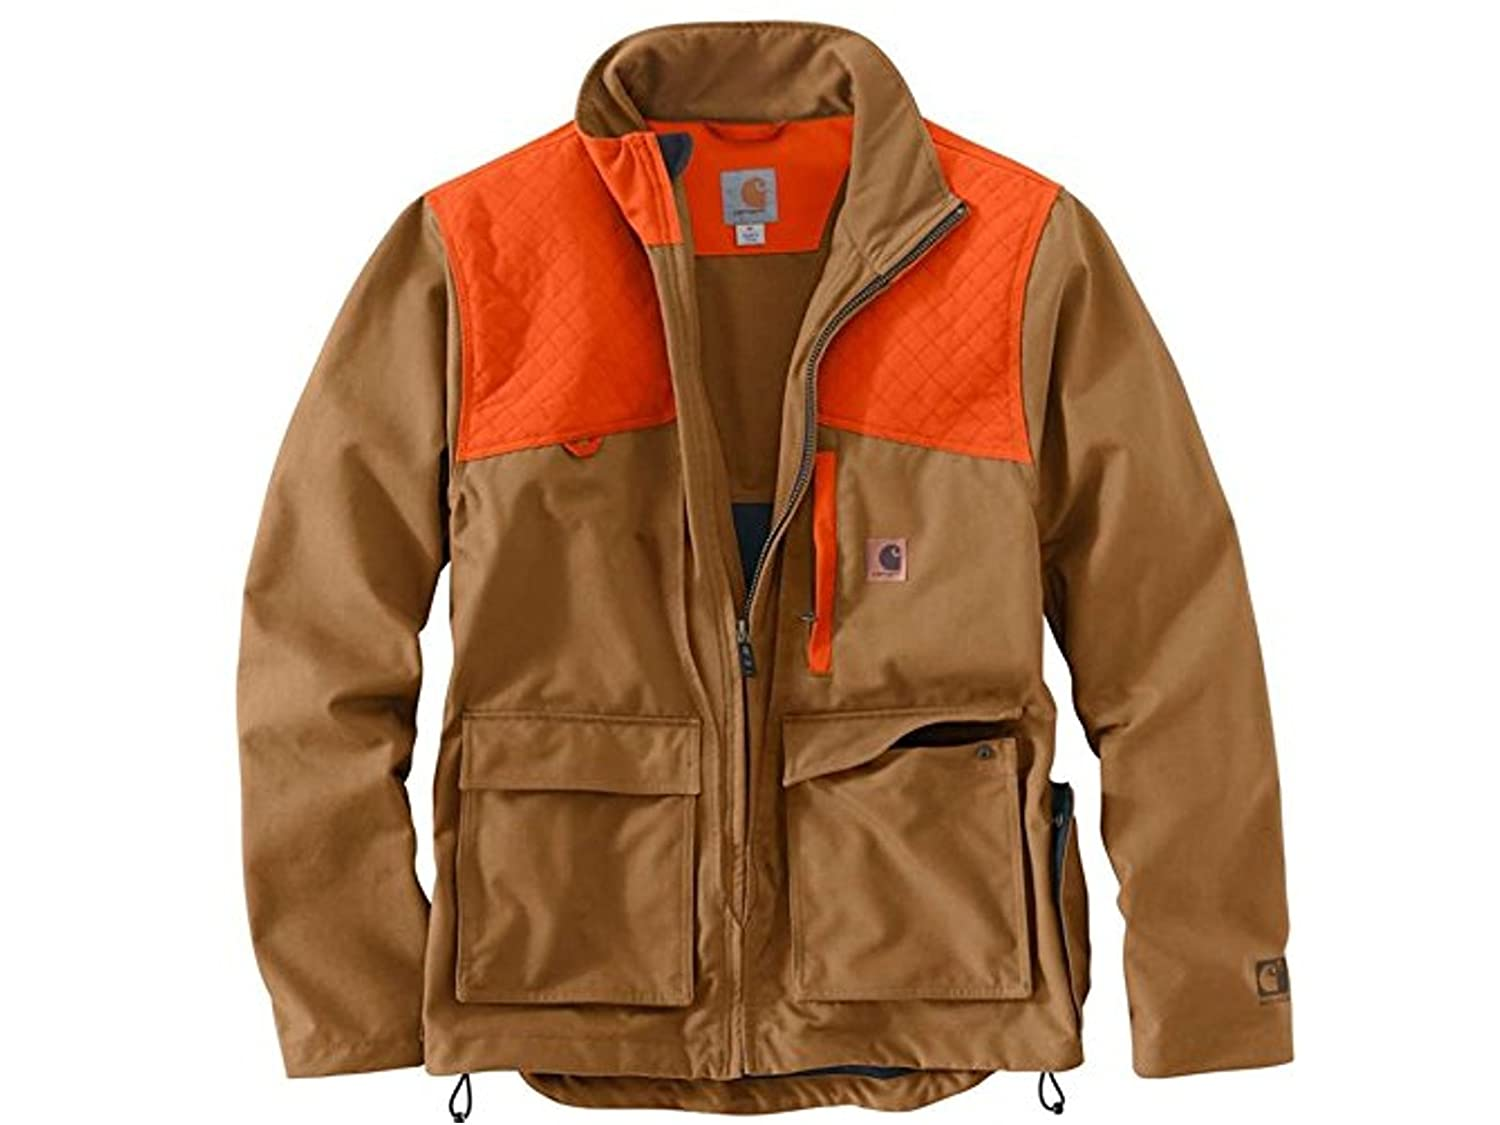 Carhartt OUTERWEAR メンズ Carhartt Brown B079KCL4M2